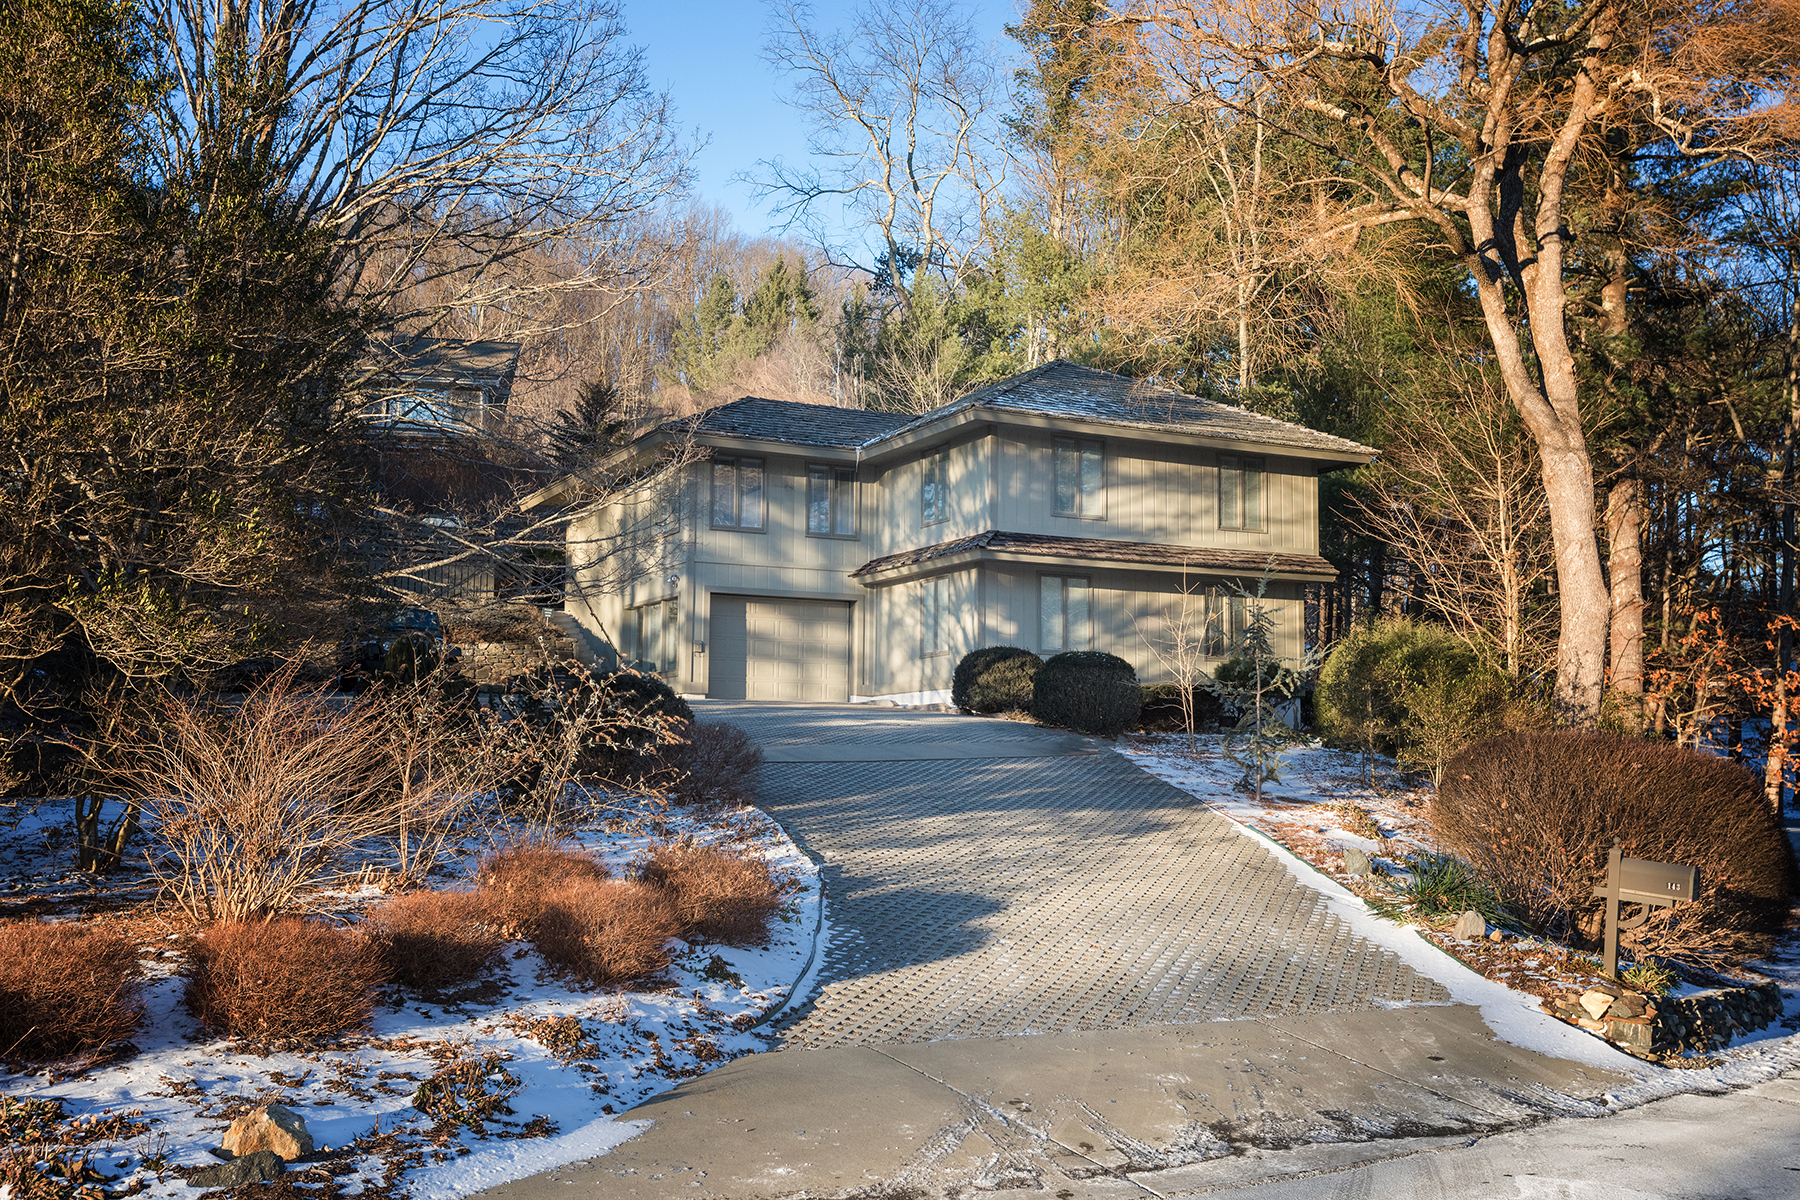 Single Family Home for Sale at Boone - Council Hills 143 E Glendale Drive Boone, North Carolina, 28607 United States